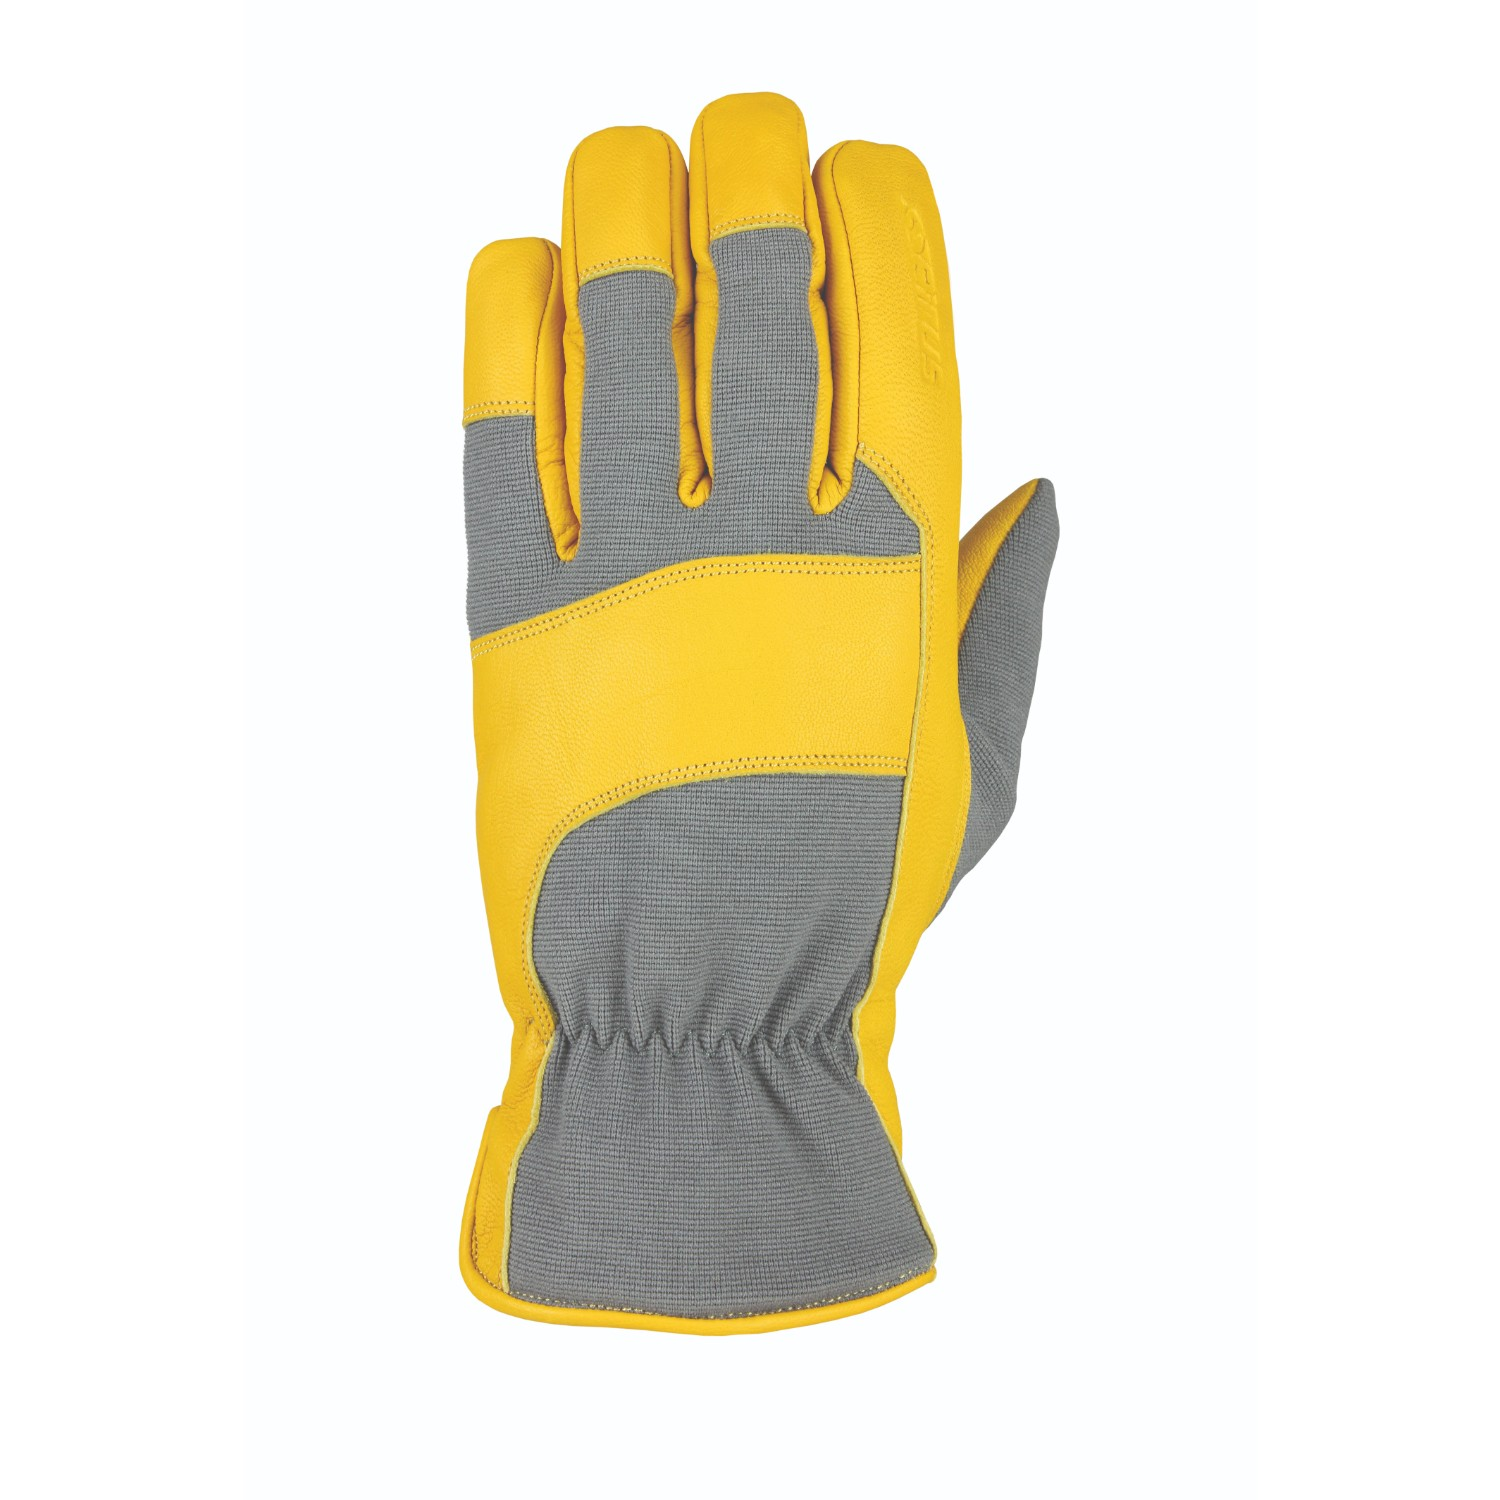 Heatwave Leather Glove Gray Tan Goatskin